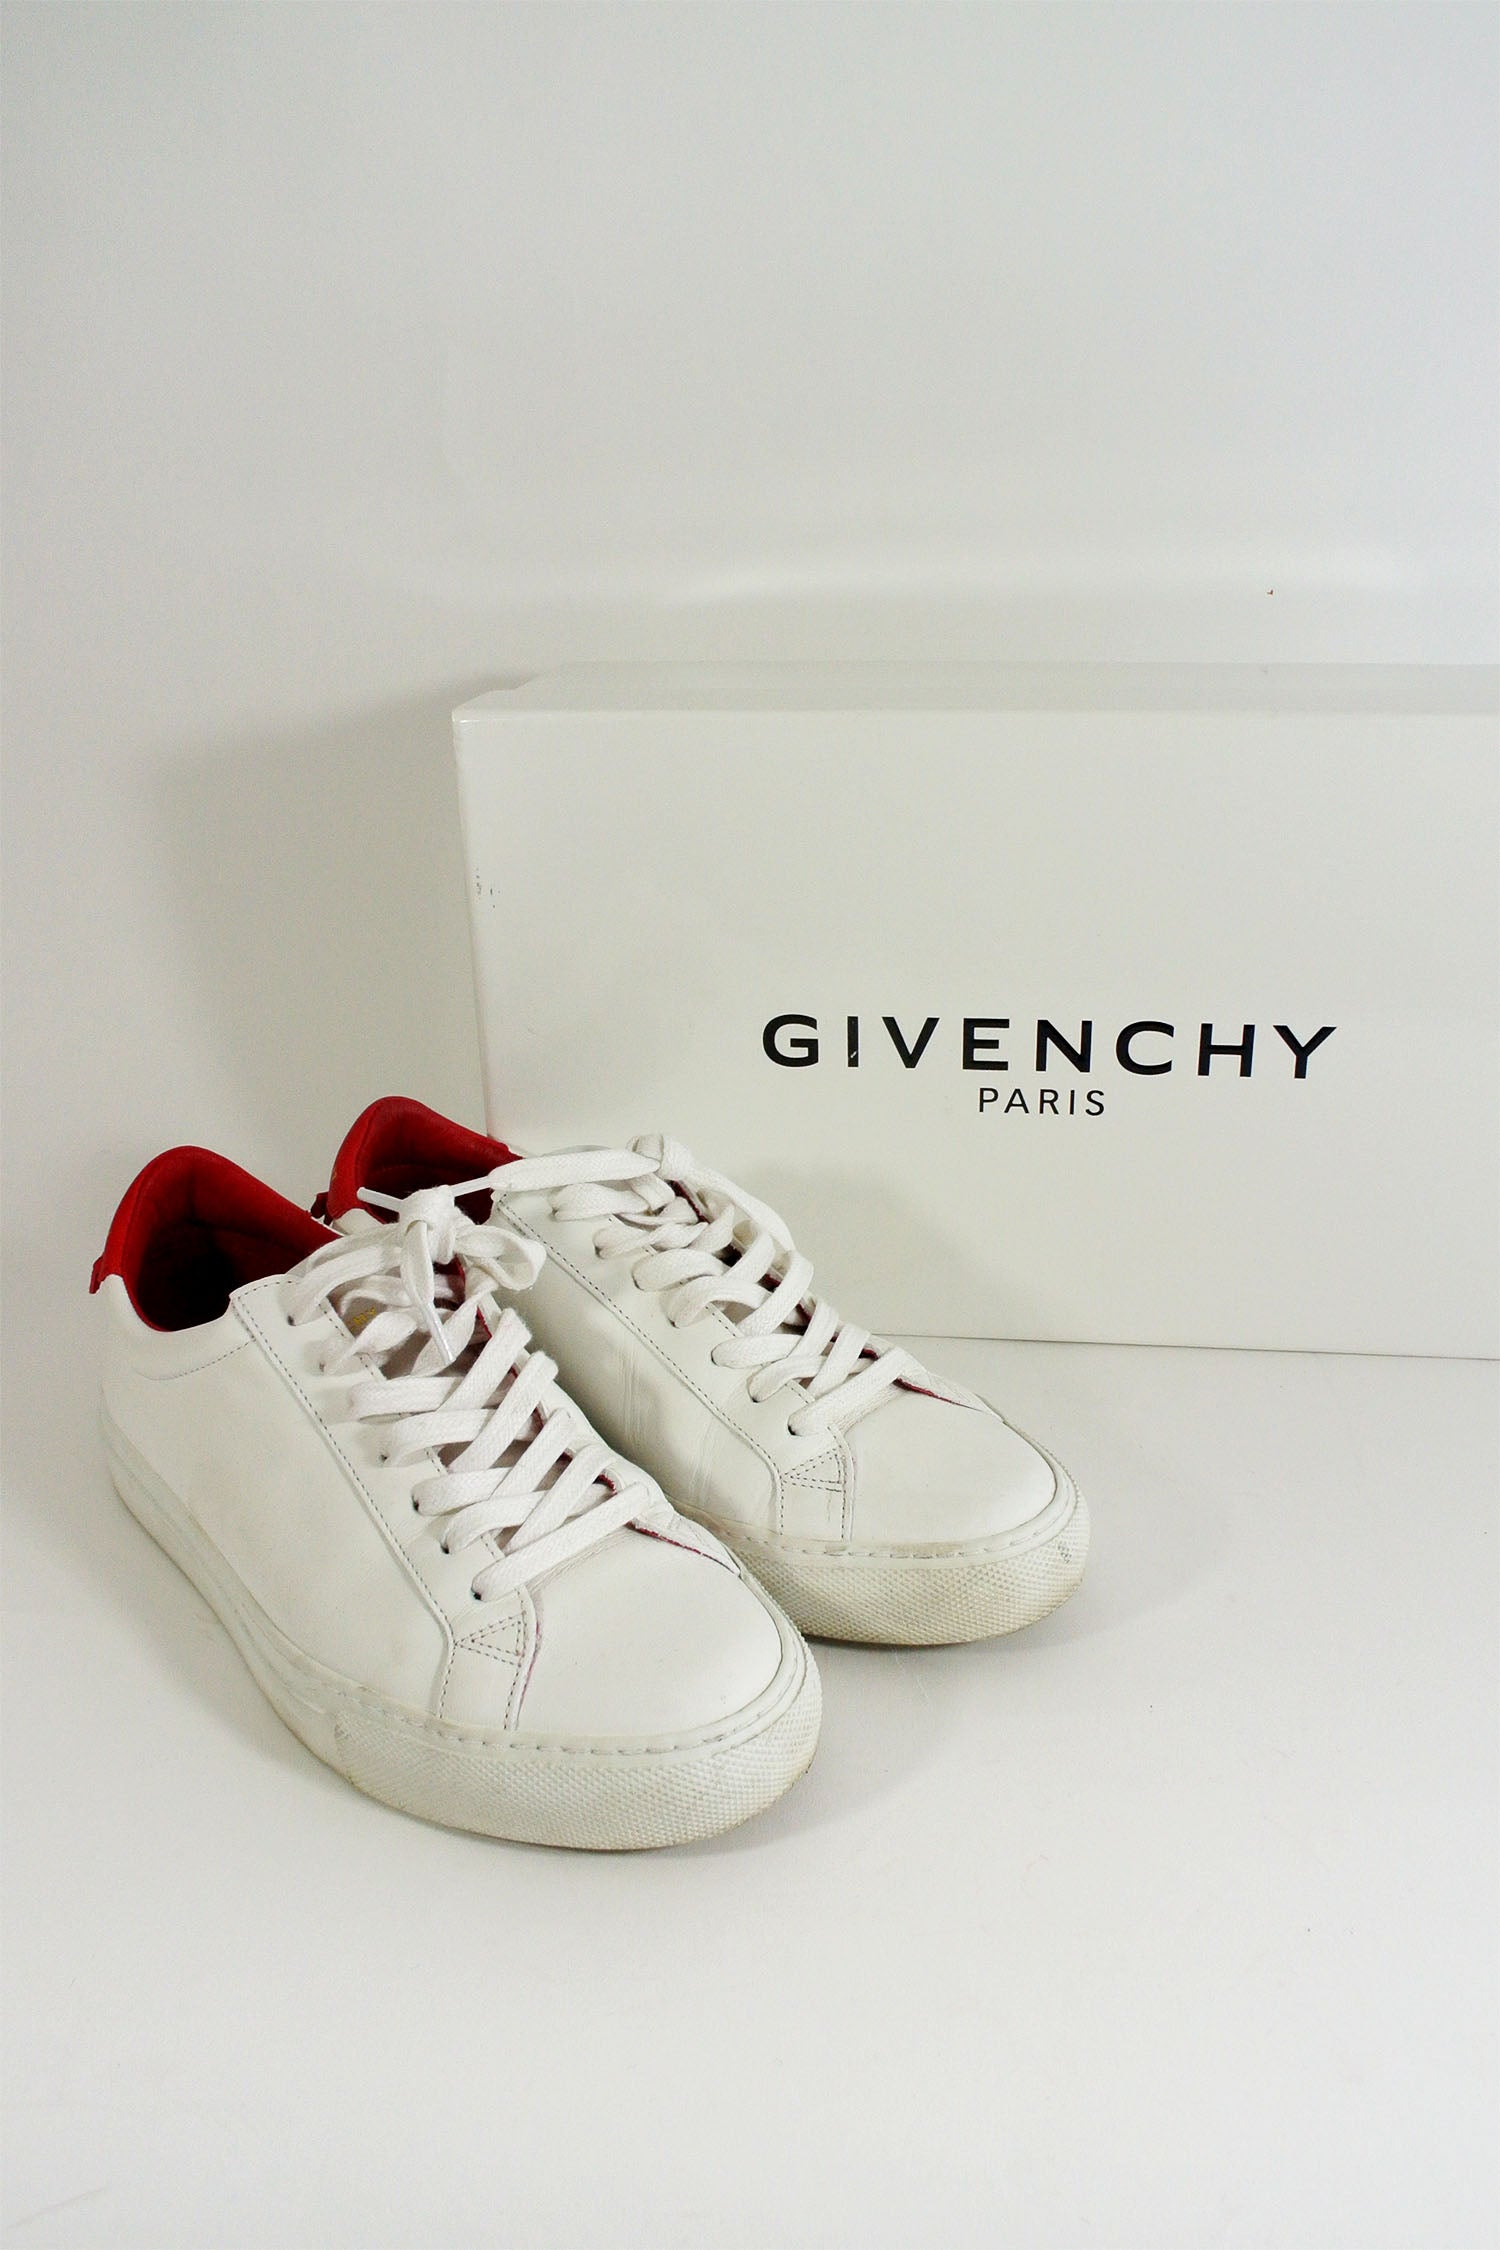 Givenchy 2017 Urban Street Low Top Sneaker Sz 37